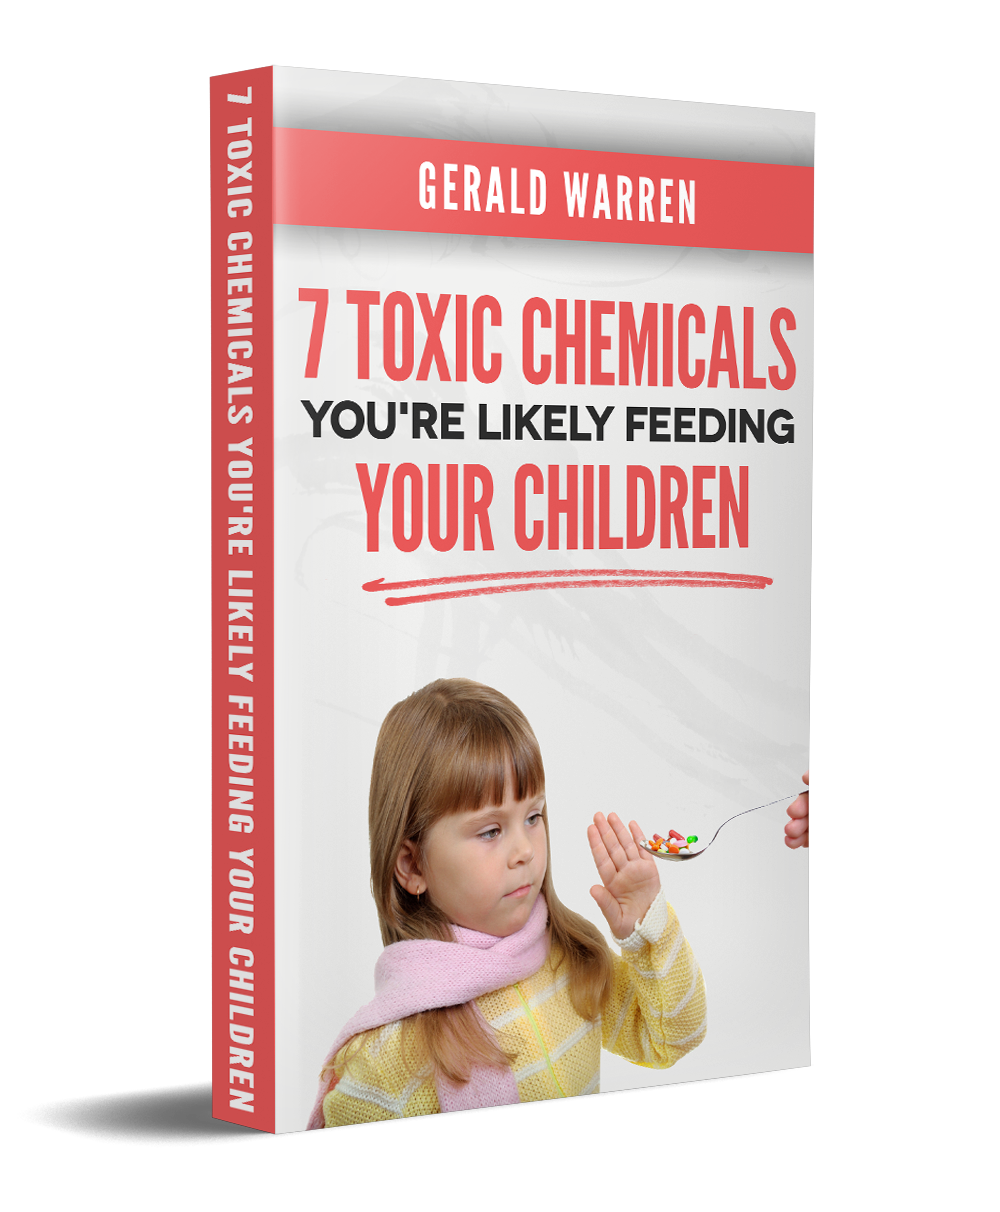 7 Toxic Chemicals You're Likely Feeding Your Family